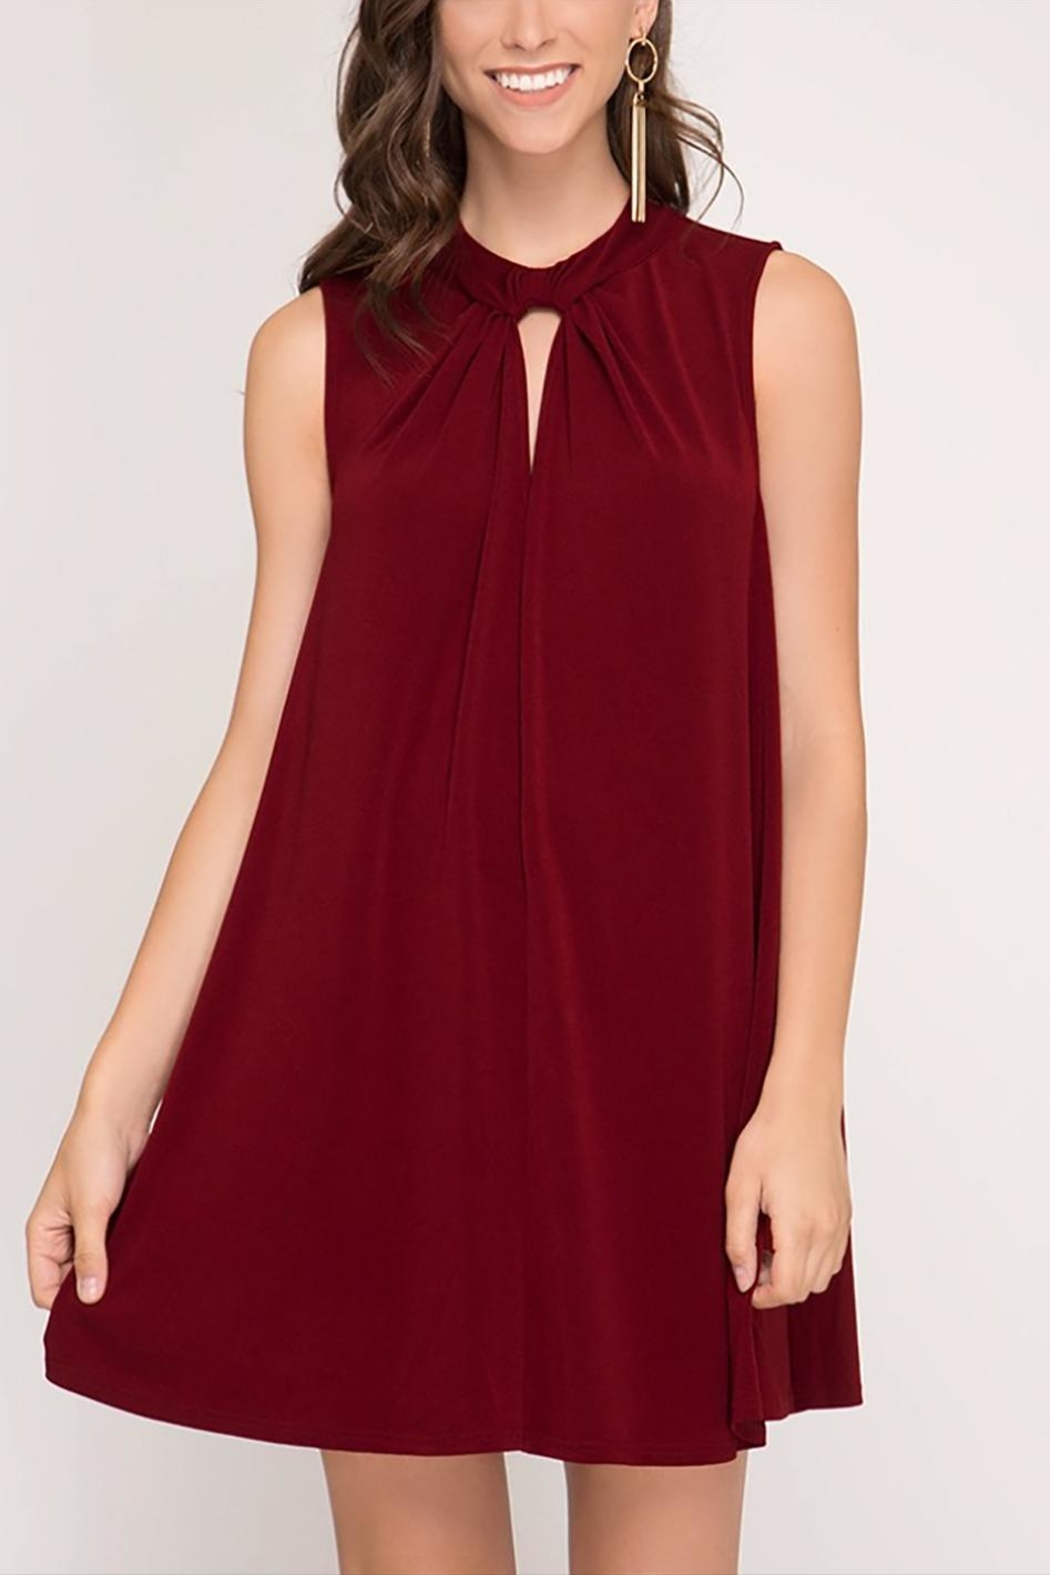 She + Sky Holiday Swing Dress - Main Image